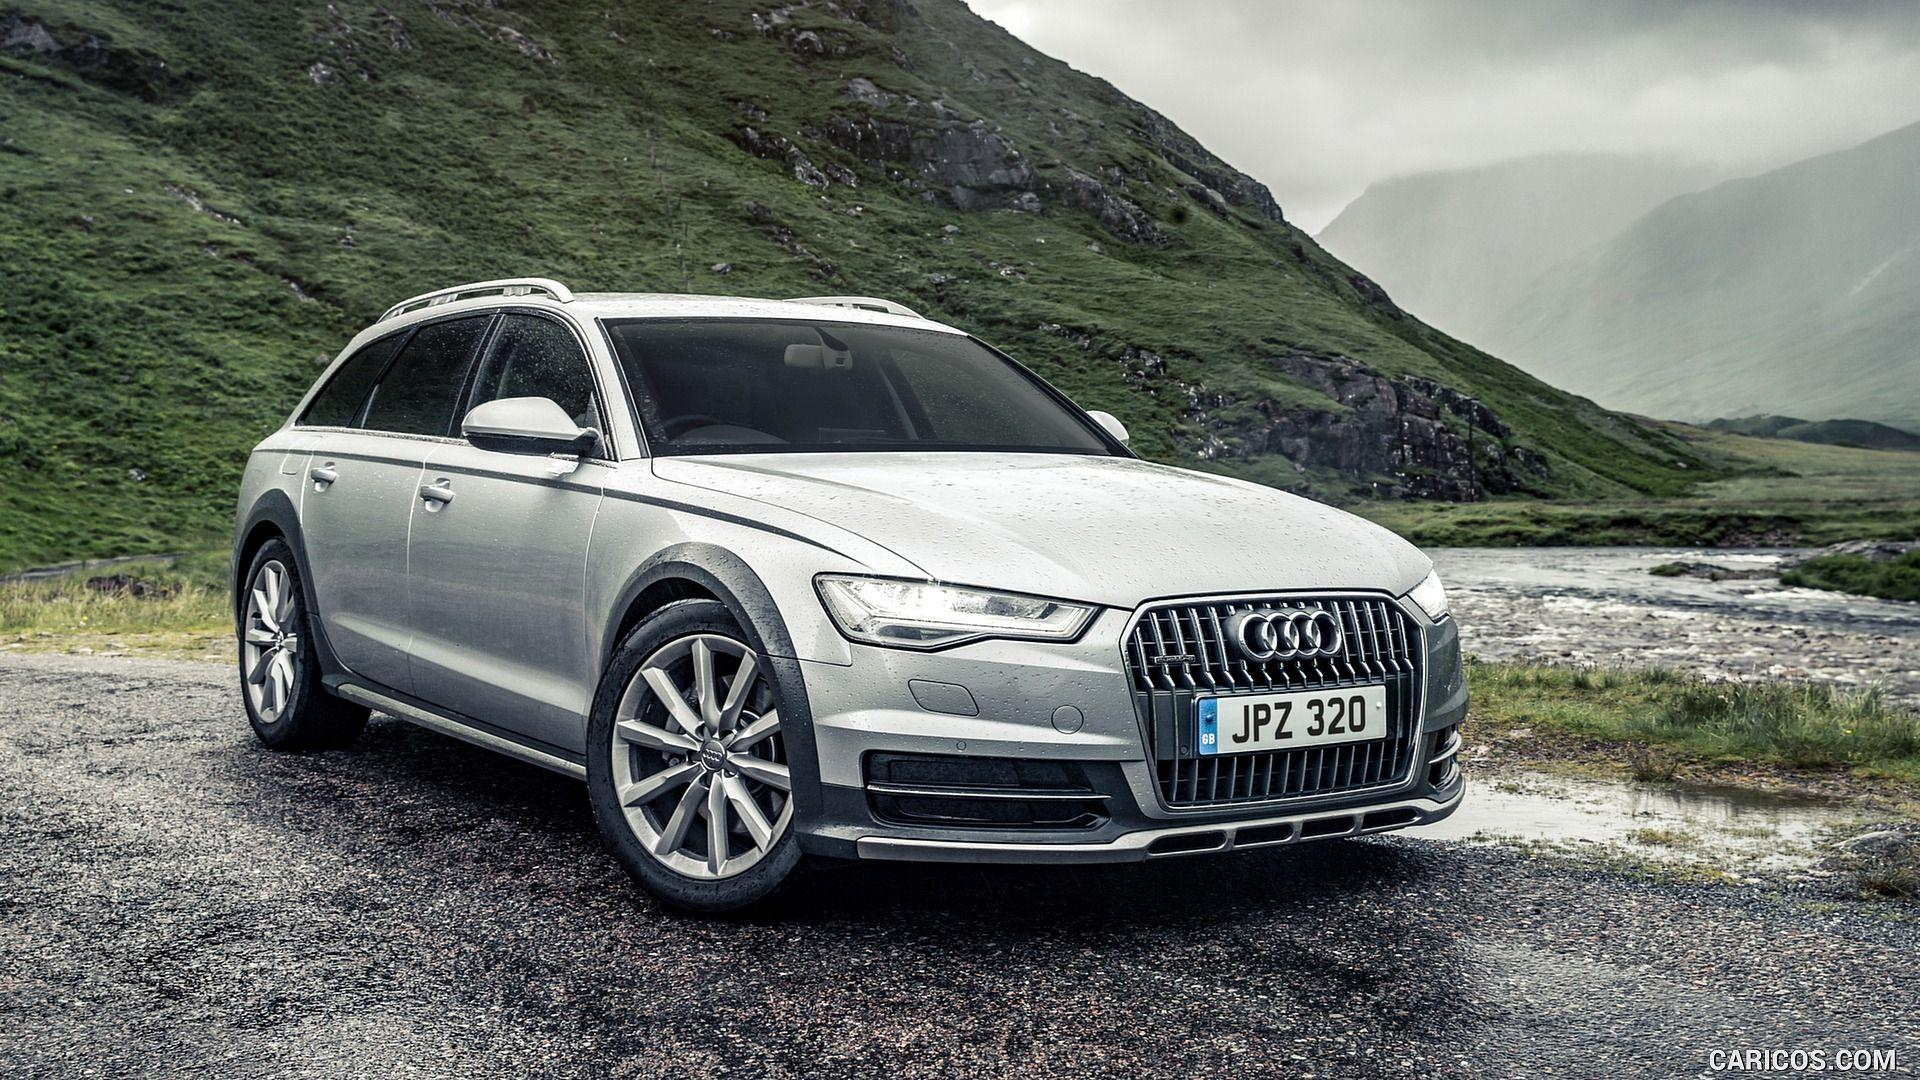 2016 Audi A6 allroad (UK-Spec) Wallpaper | voitures | Pinterest ...